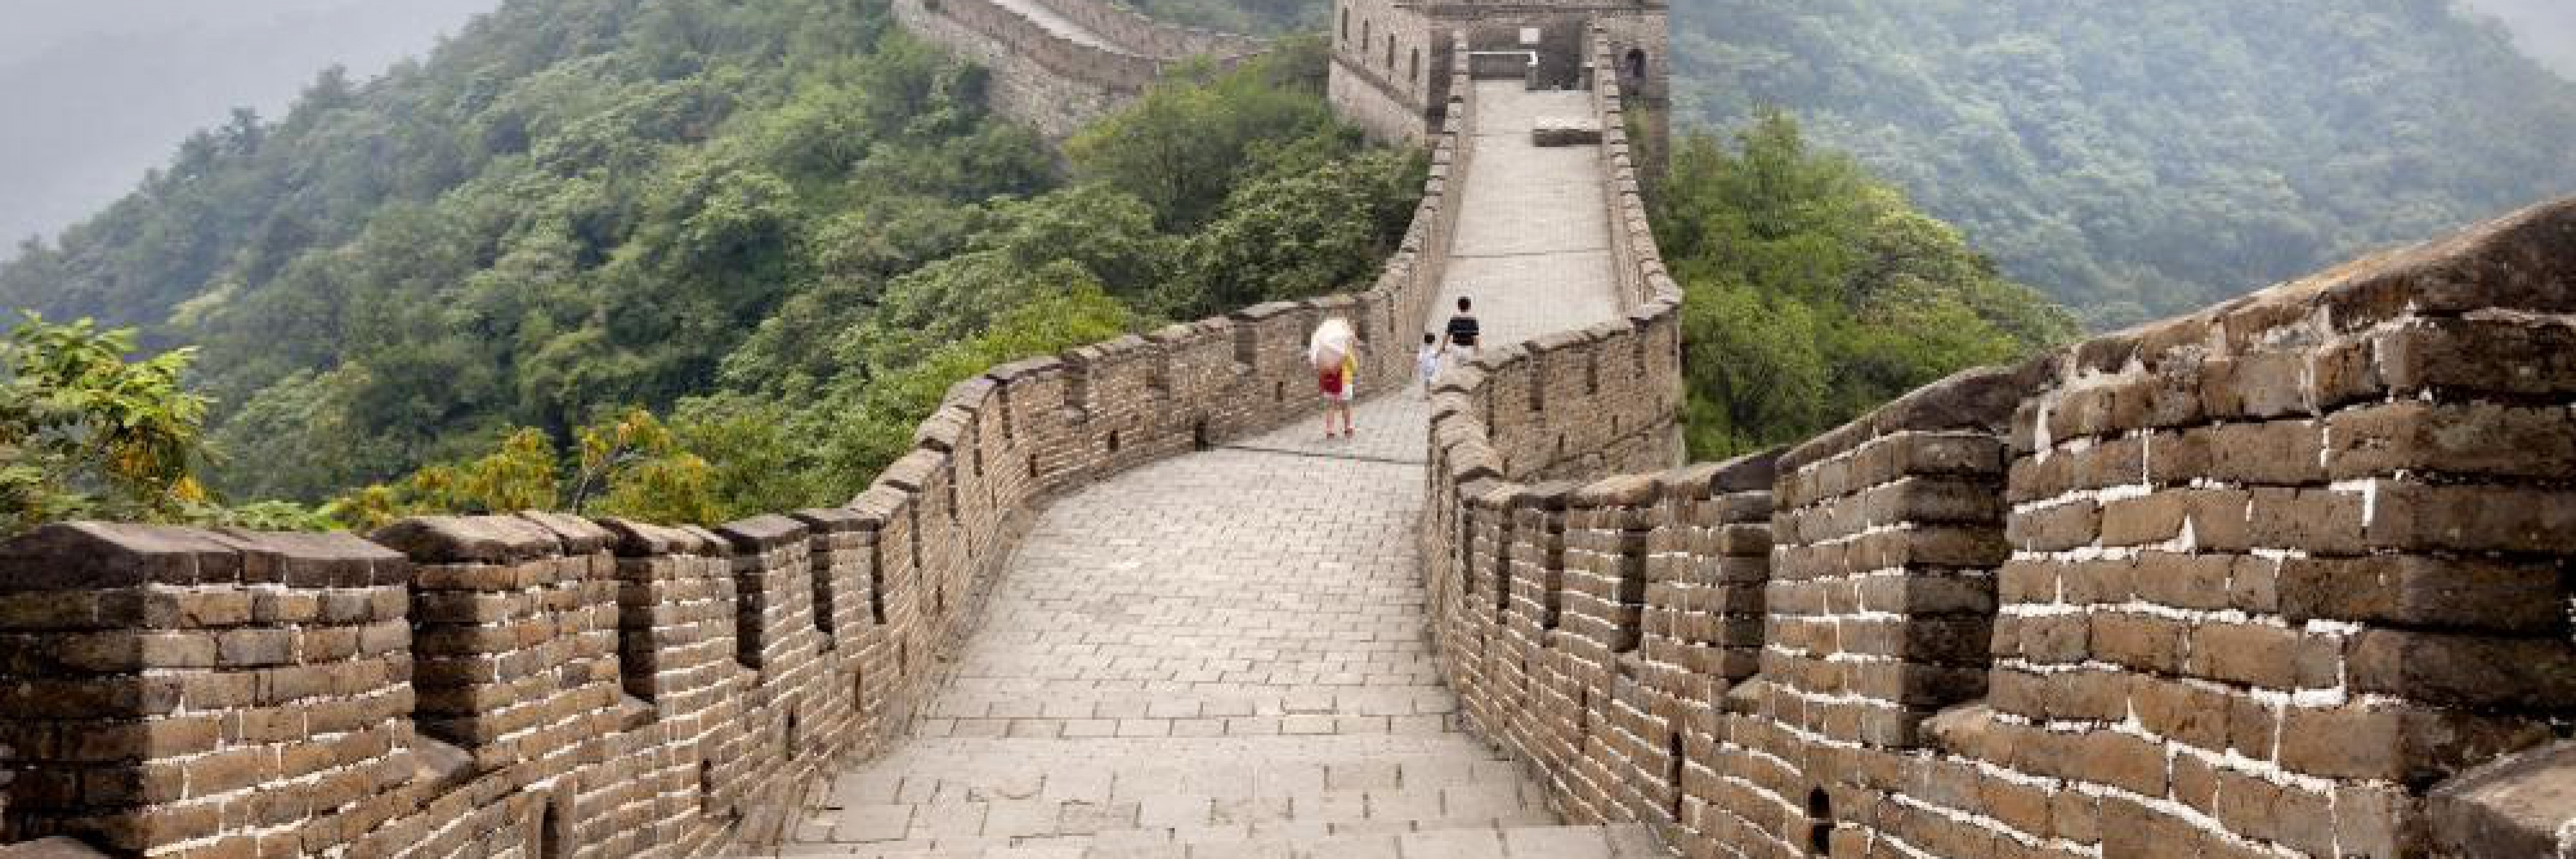 cropped-The-Great-Wall-Of-China-3.jpg